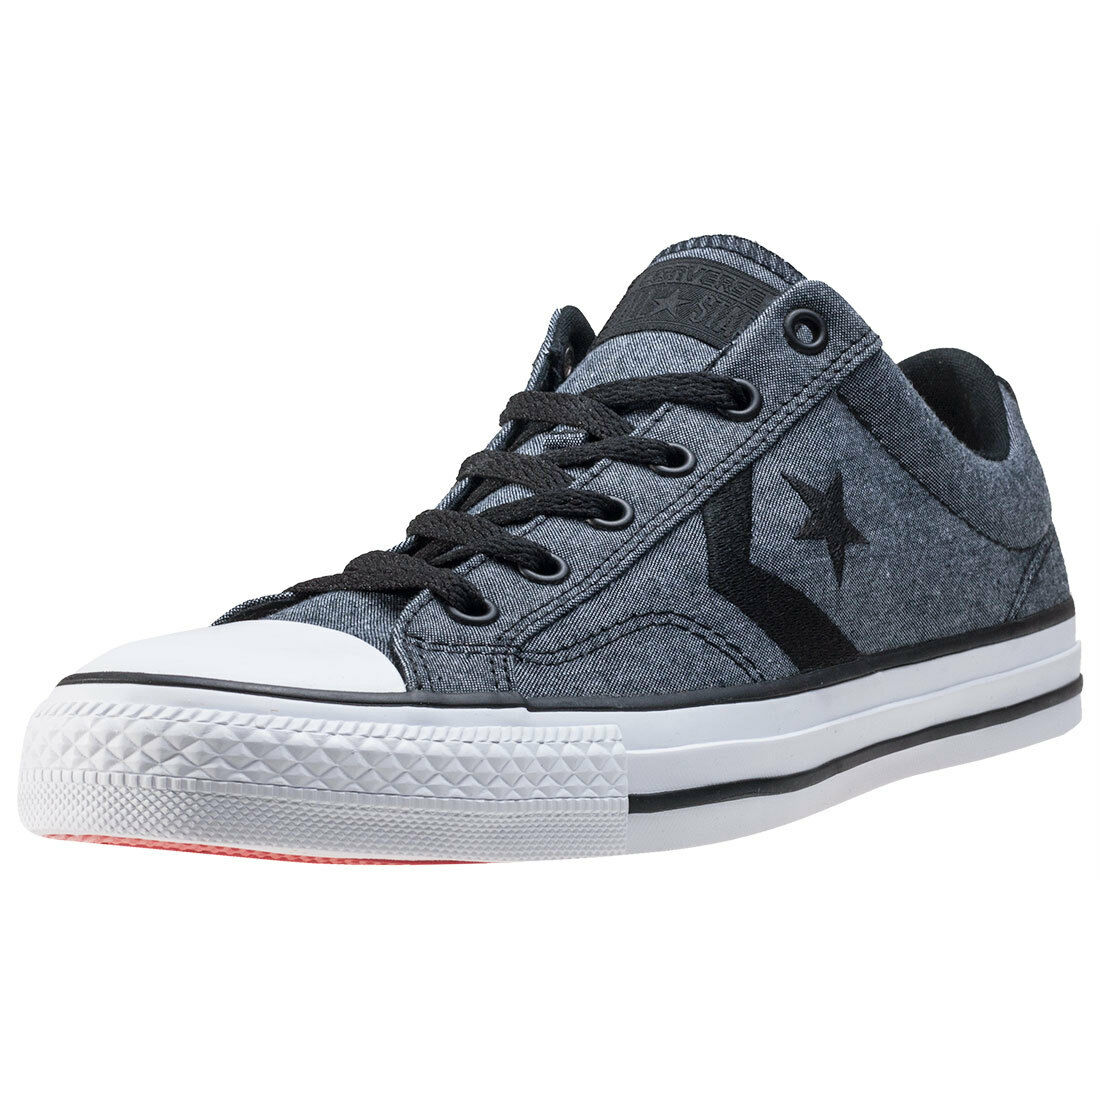 converse star player ox mens trainers black white new. Black Bedroom Furniture Sets. Home Design Ideas